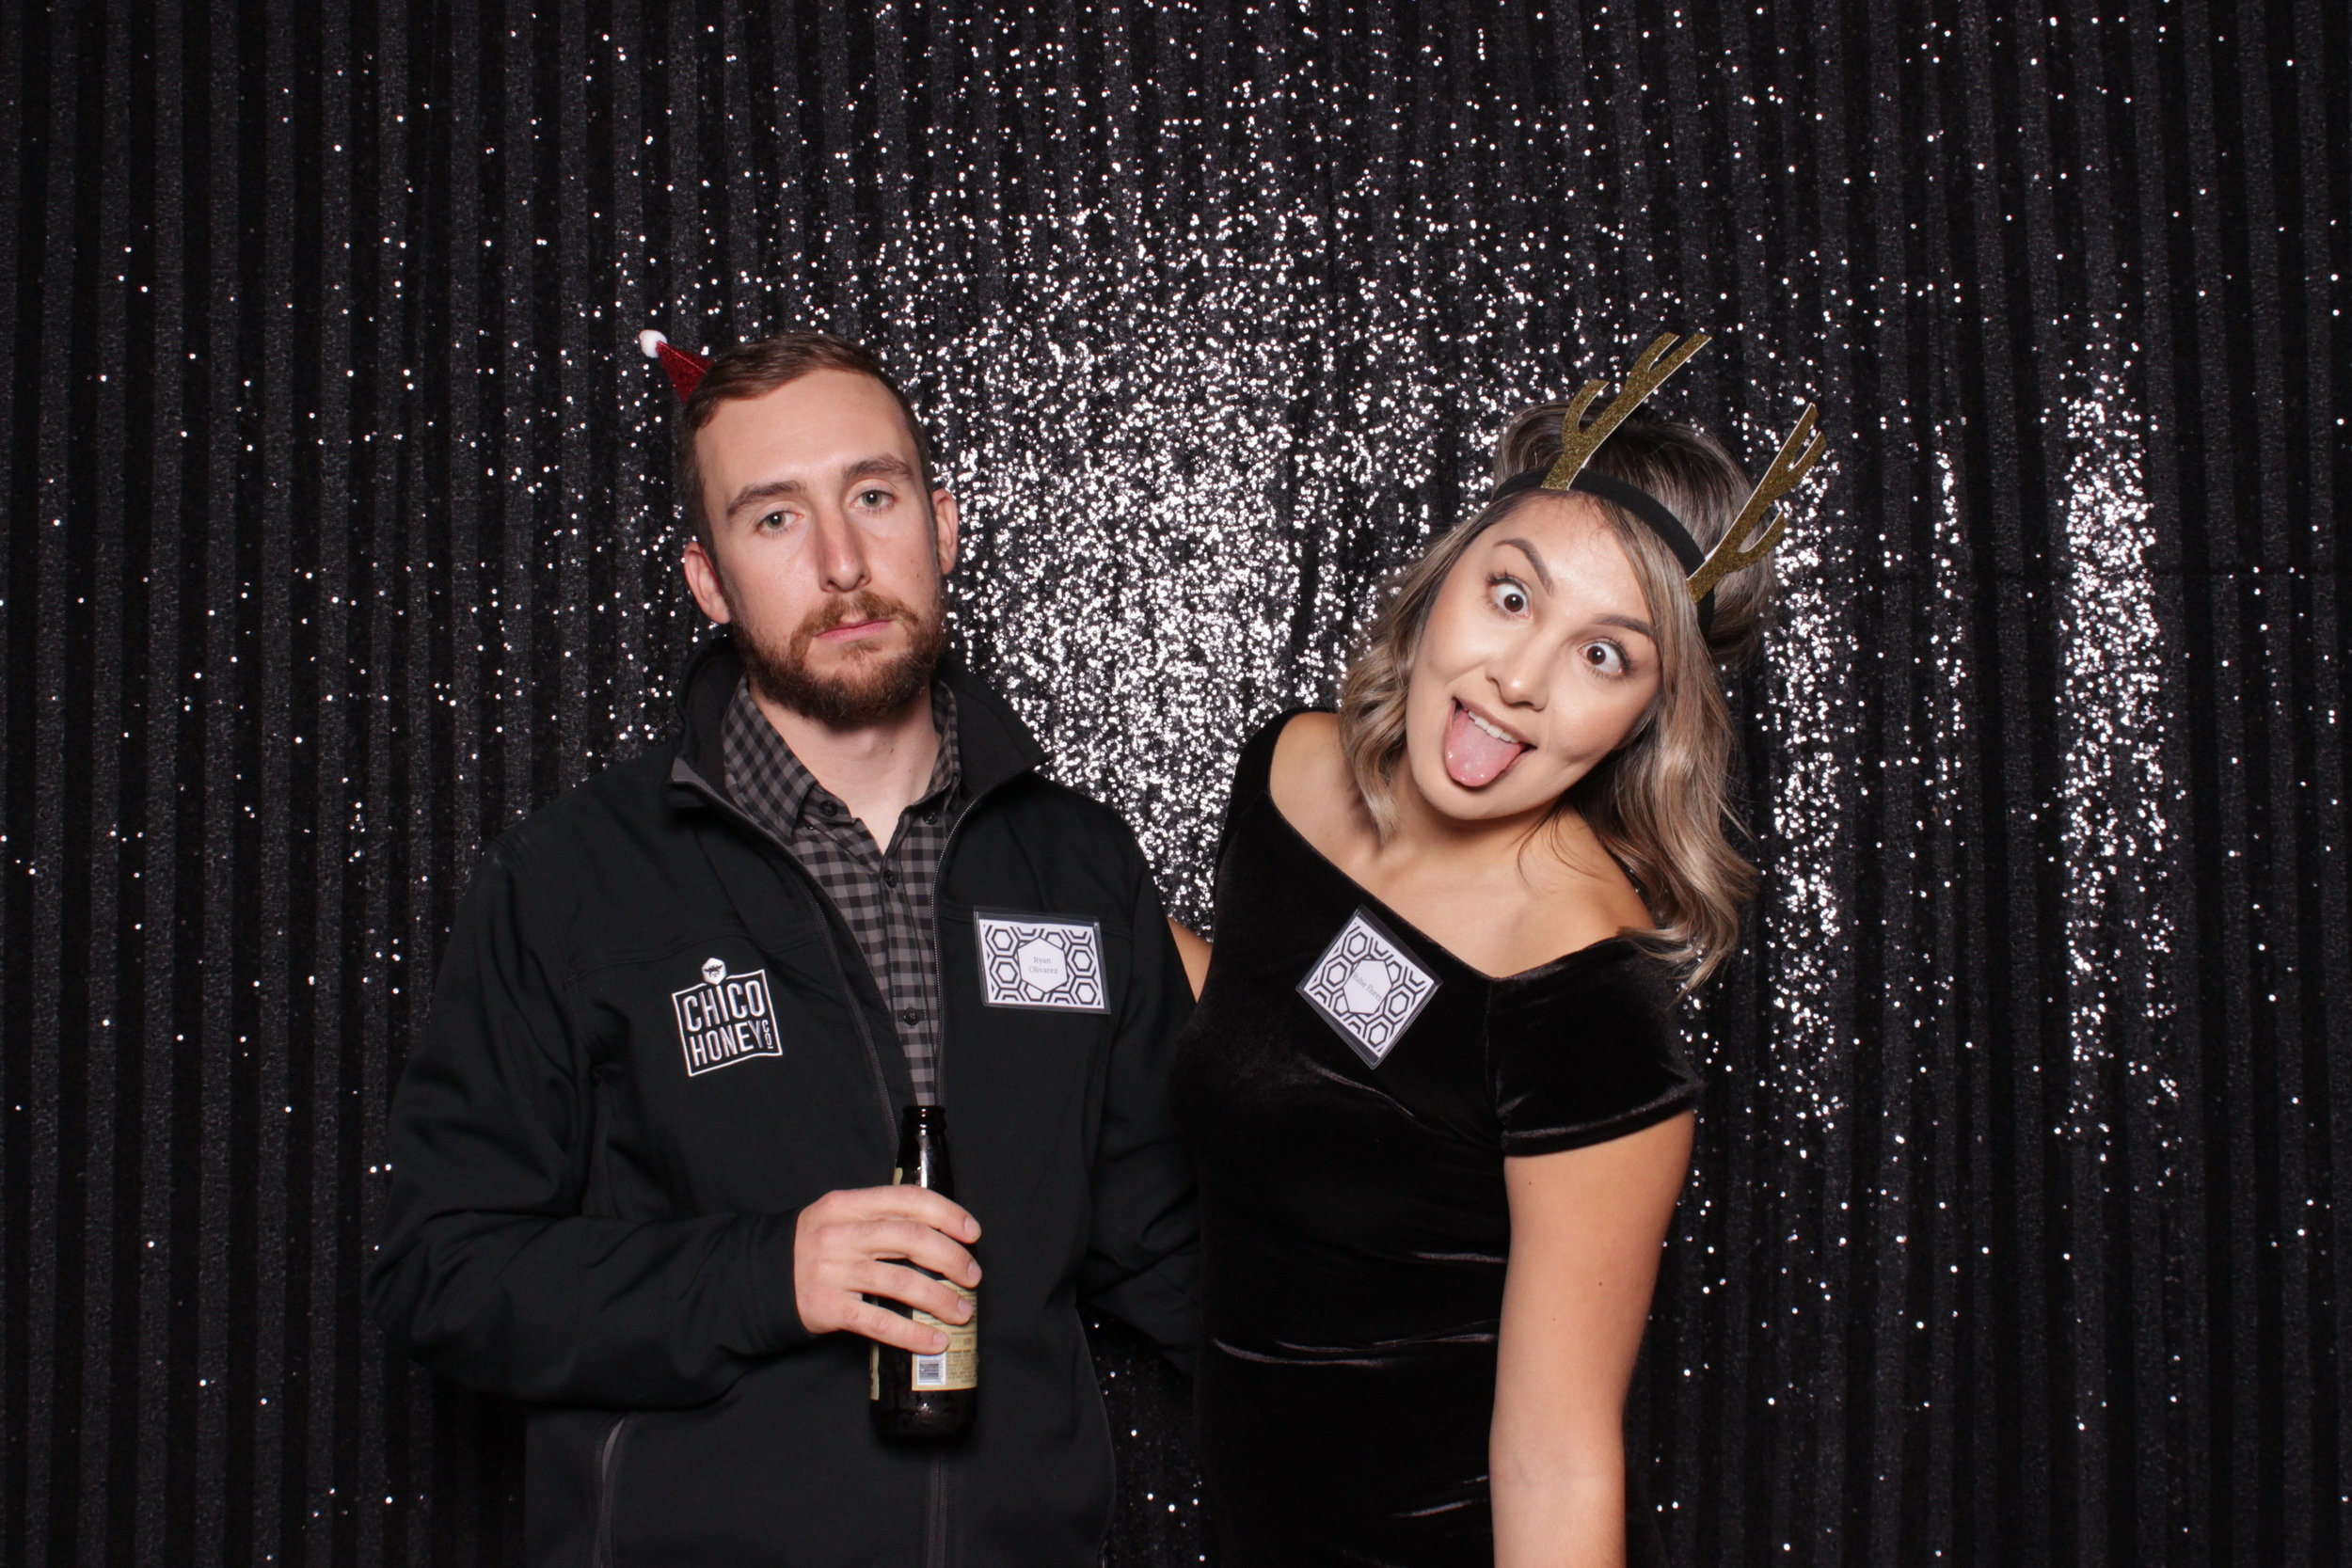 Chico-photo-booth-rental-good-event-ideas